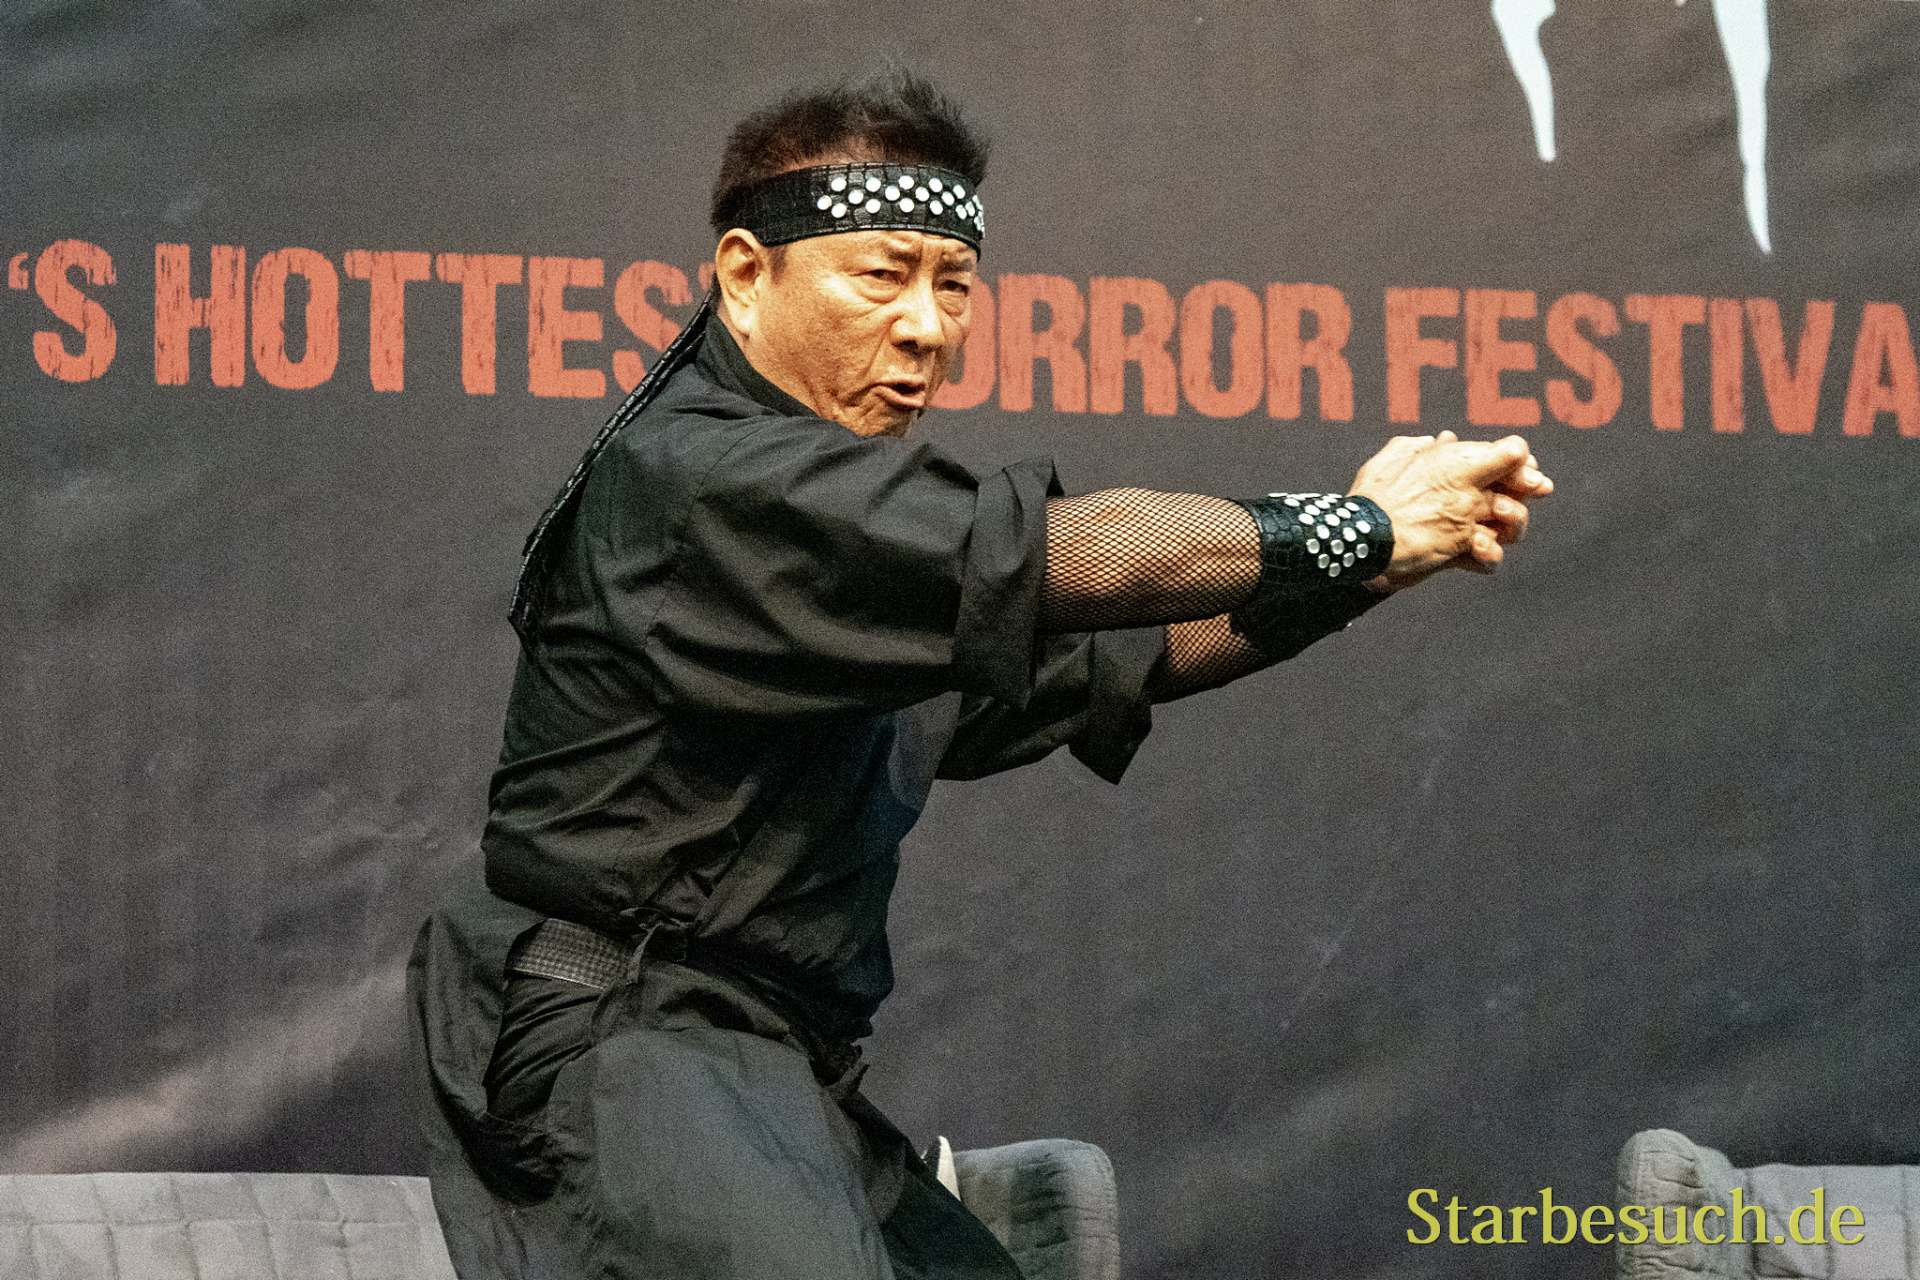 DORTMUND, GERMANY - November 3rd 2018: Sho Kosugi at Weekend of Hell 2018